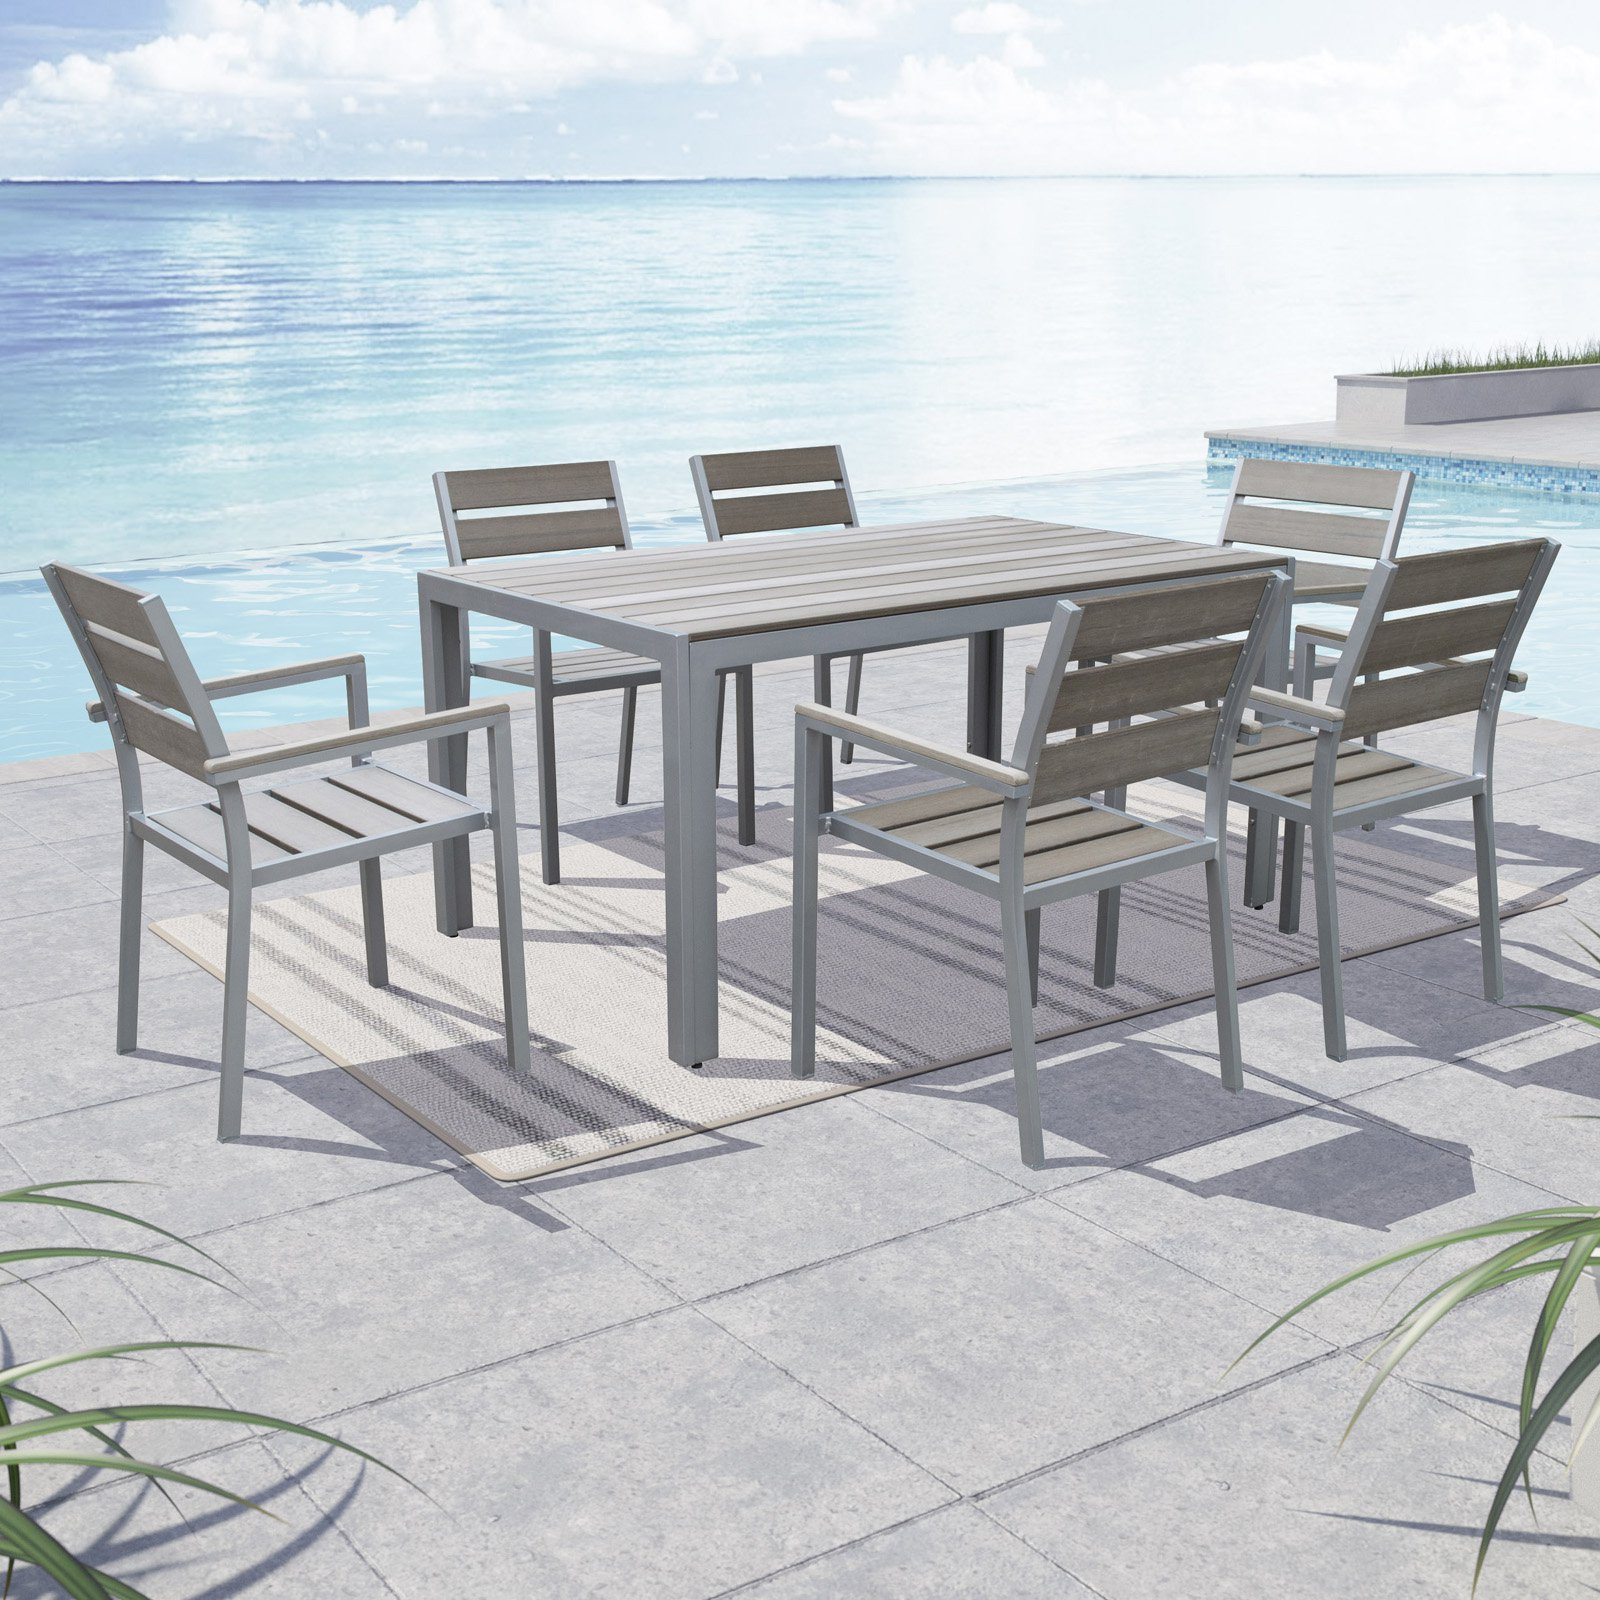 CorLiving Gallant Aluminum 7 Piece Rectangular Patio Dining Room Set by Overstock